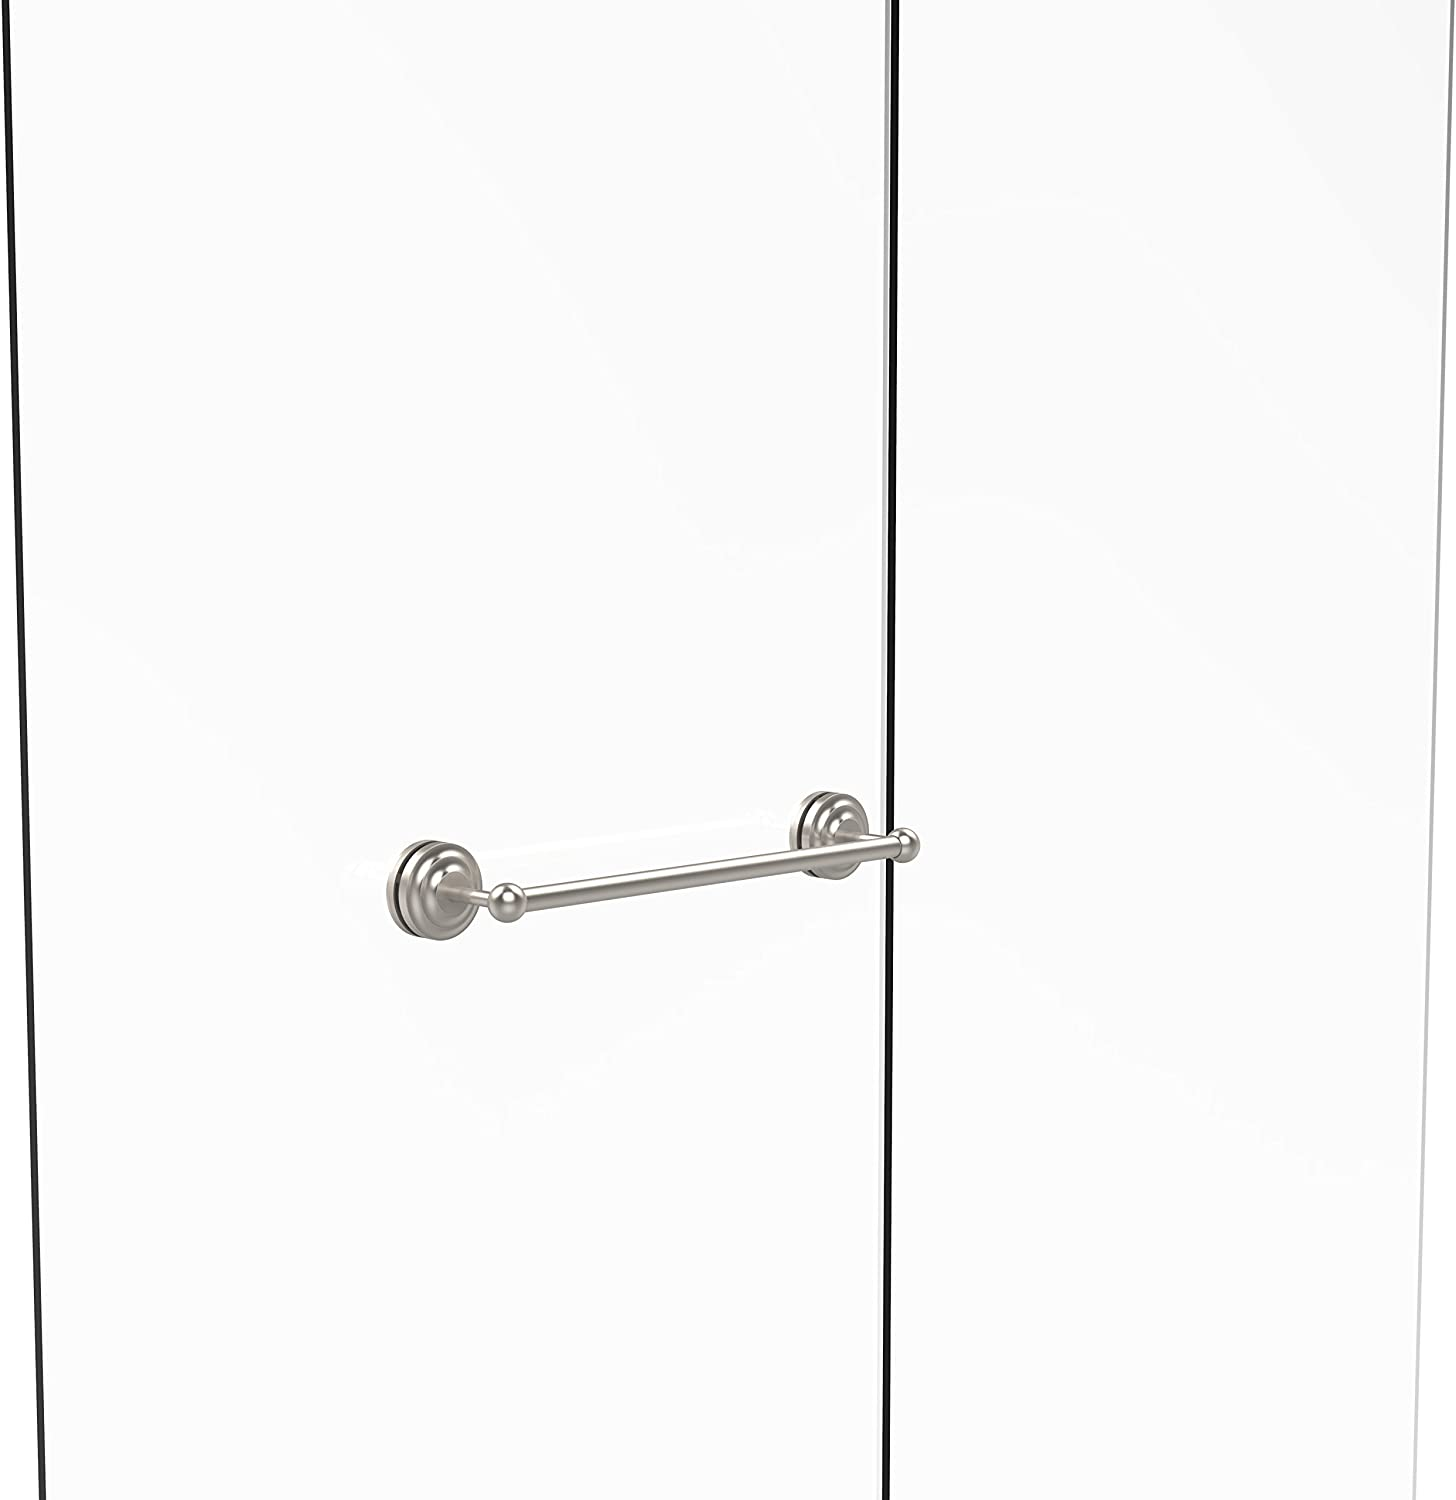 Allied Brass Que New Collection 18 Inch Shower Door Towel Bar, QN-41-SM-18-SN